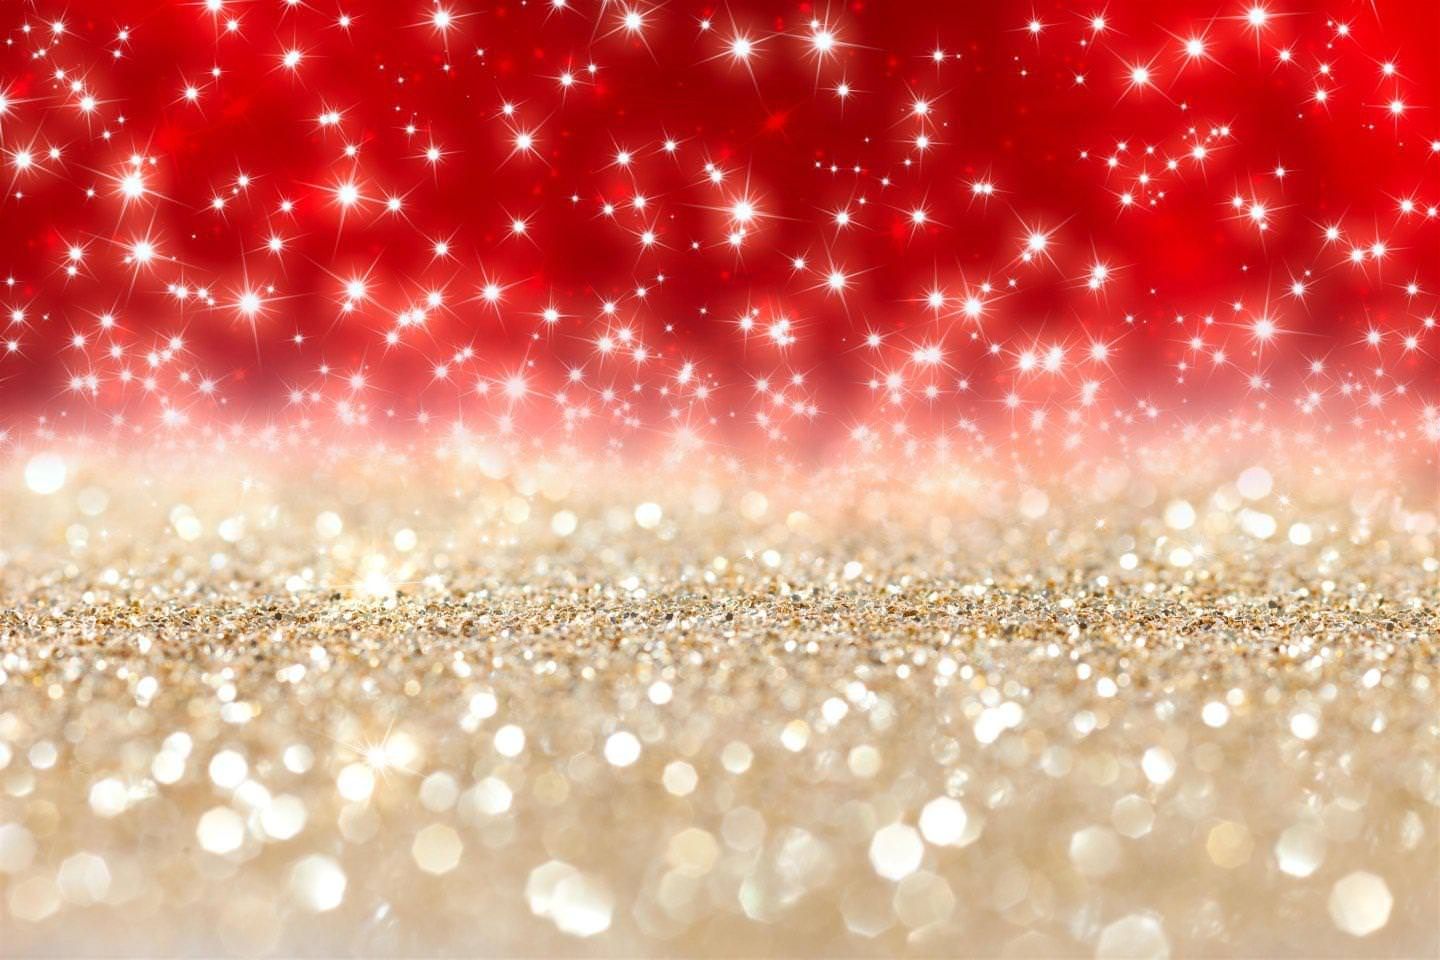 silver_and_red_glitter-wallpaper